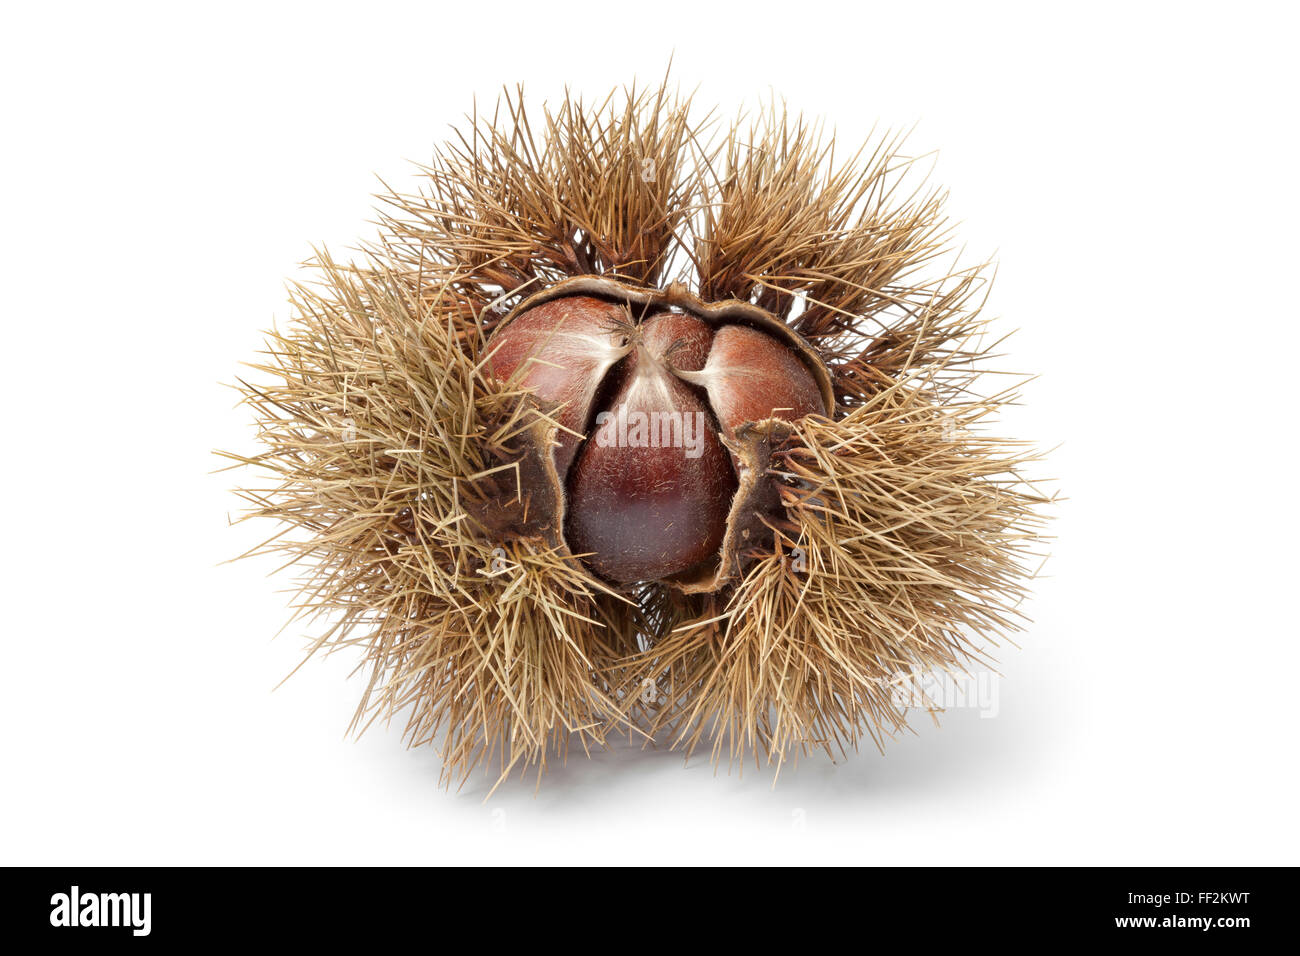 Fresh Sweet chestnut in spiked pod on white background - Stock Image